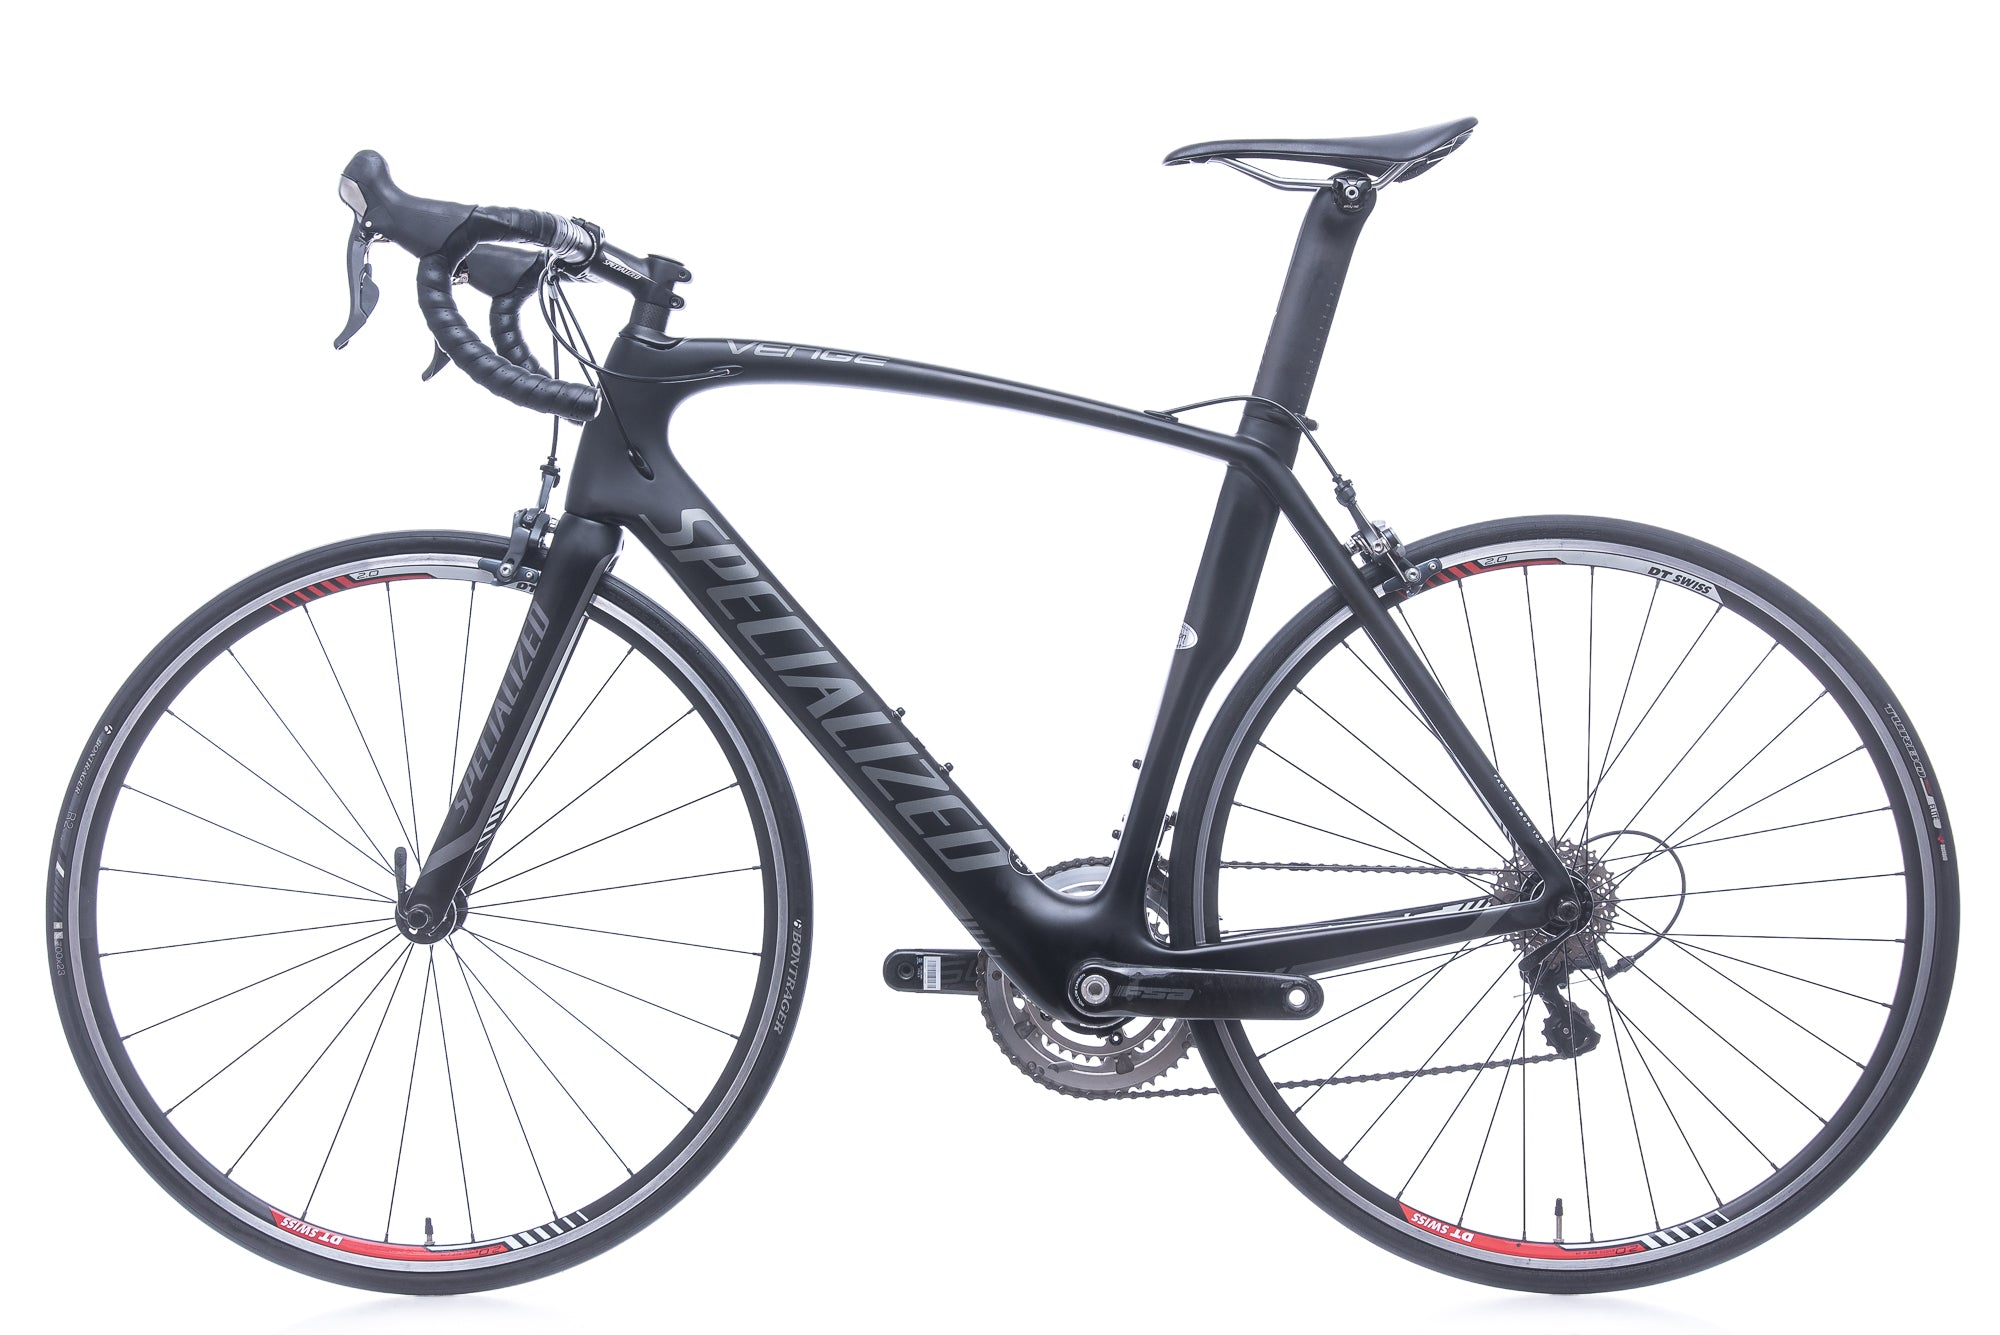 Specialized Venge Expert 56cm Bike - 2013